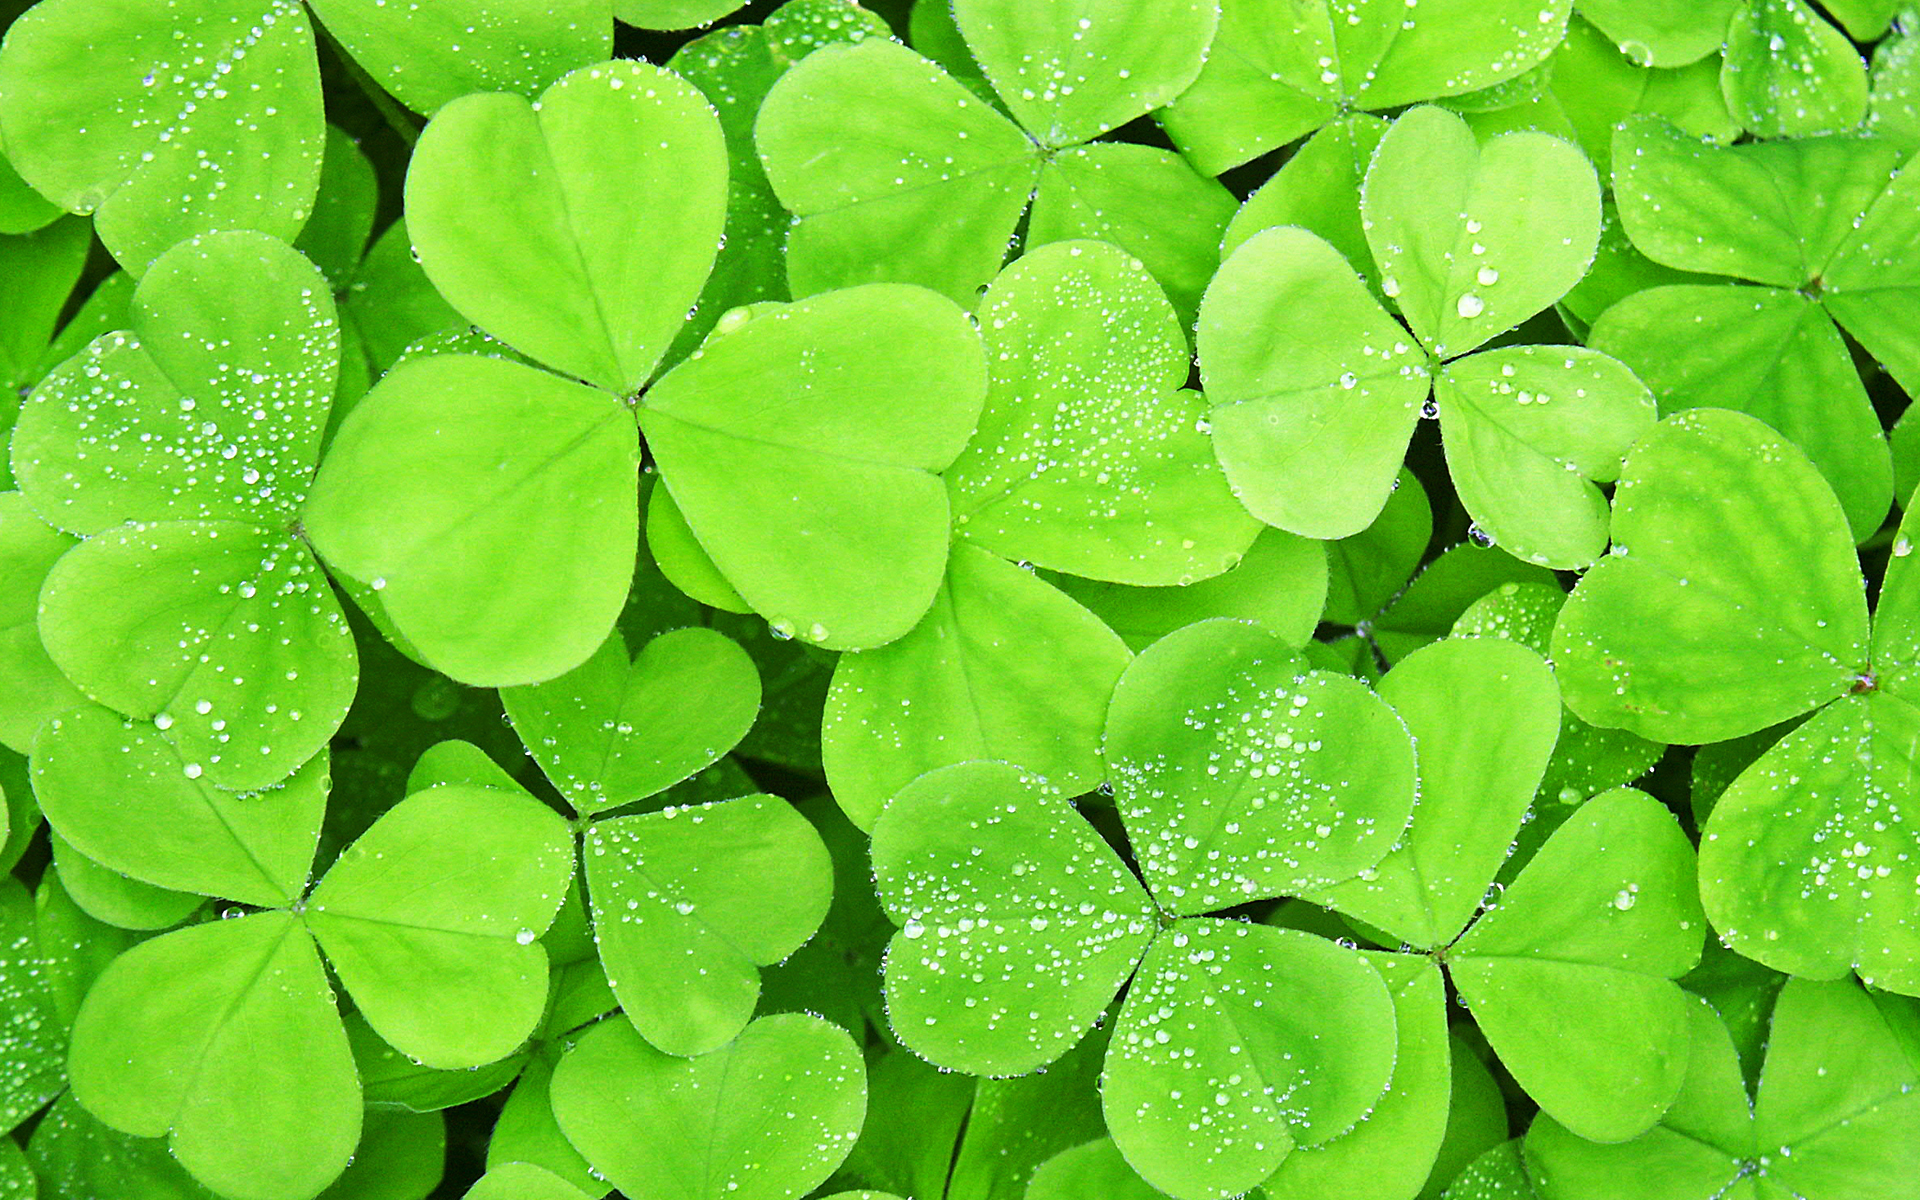 Lots of clover leaf wallpapers Lots of clover leaf stock photos 1920x1200